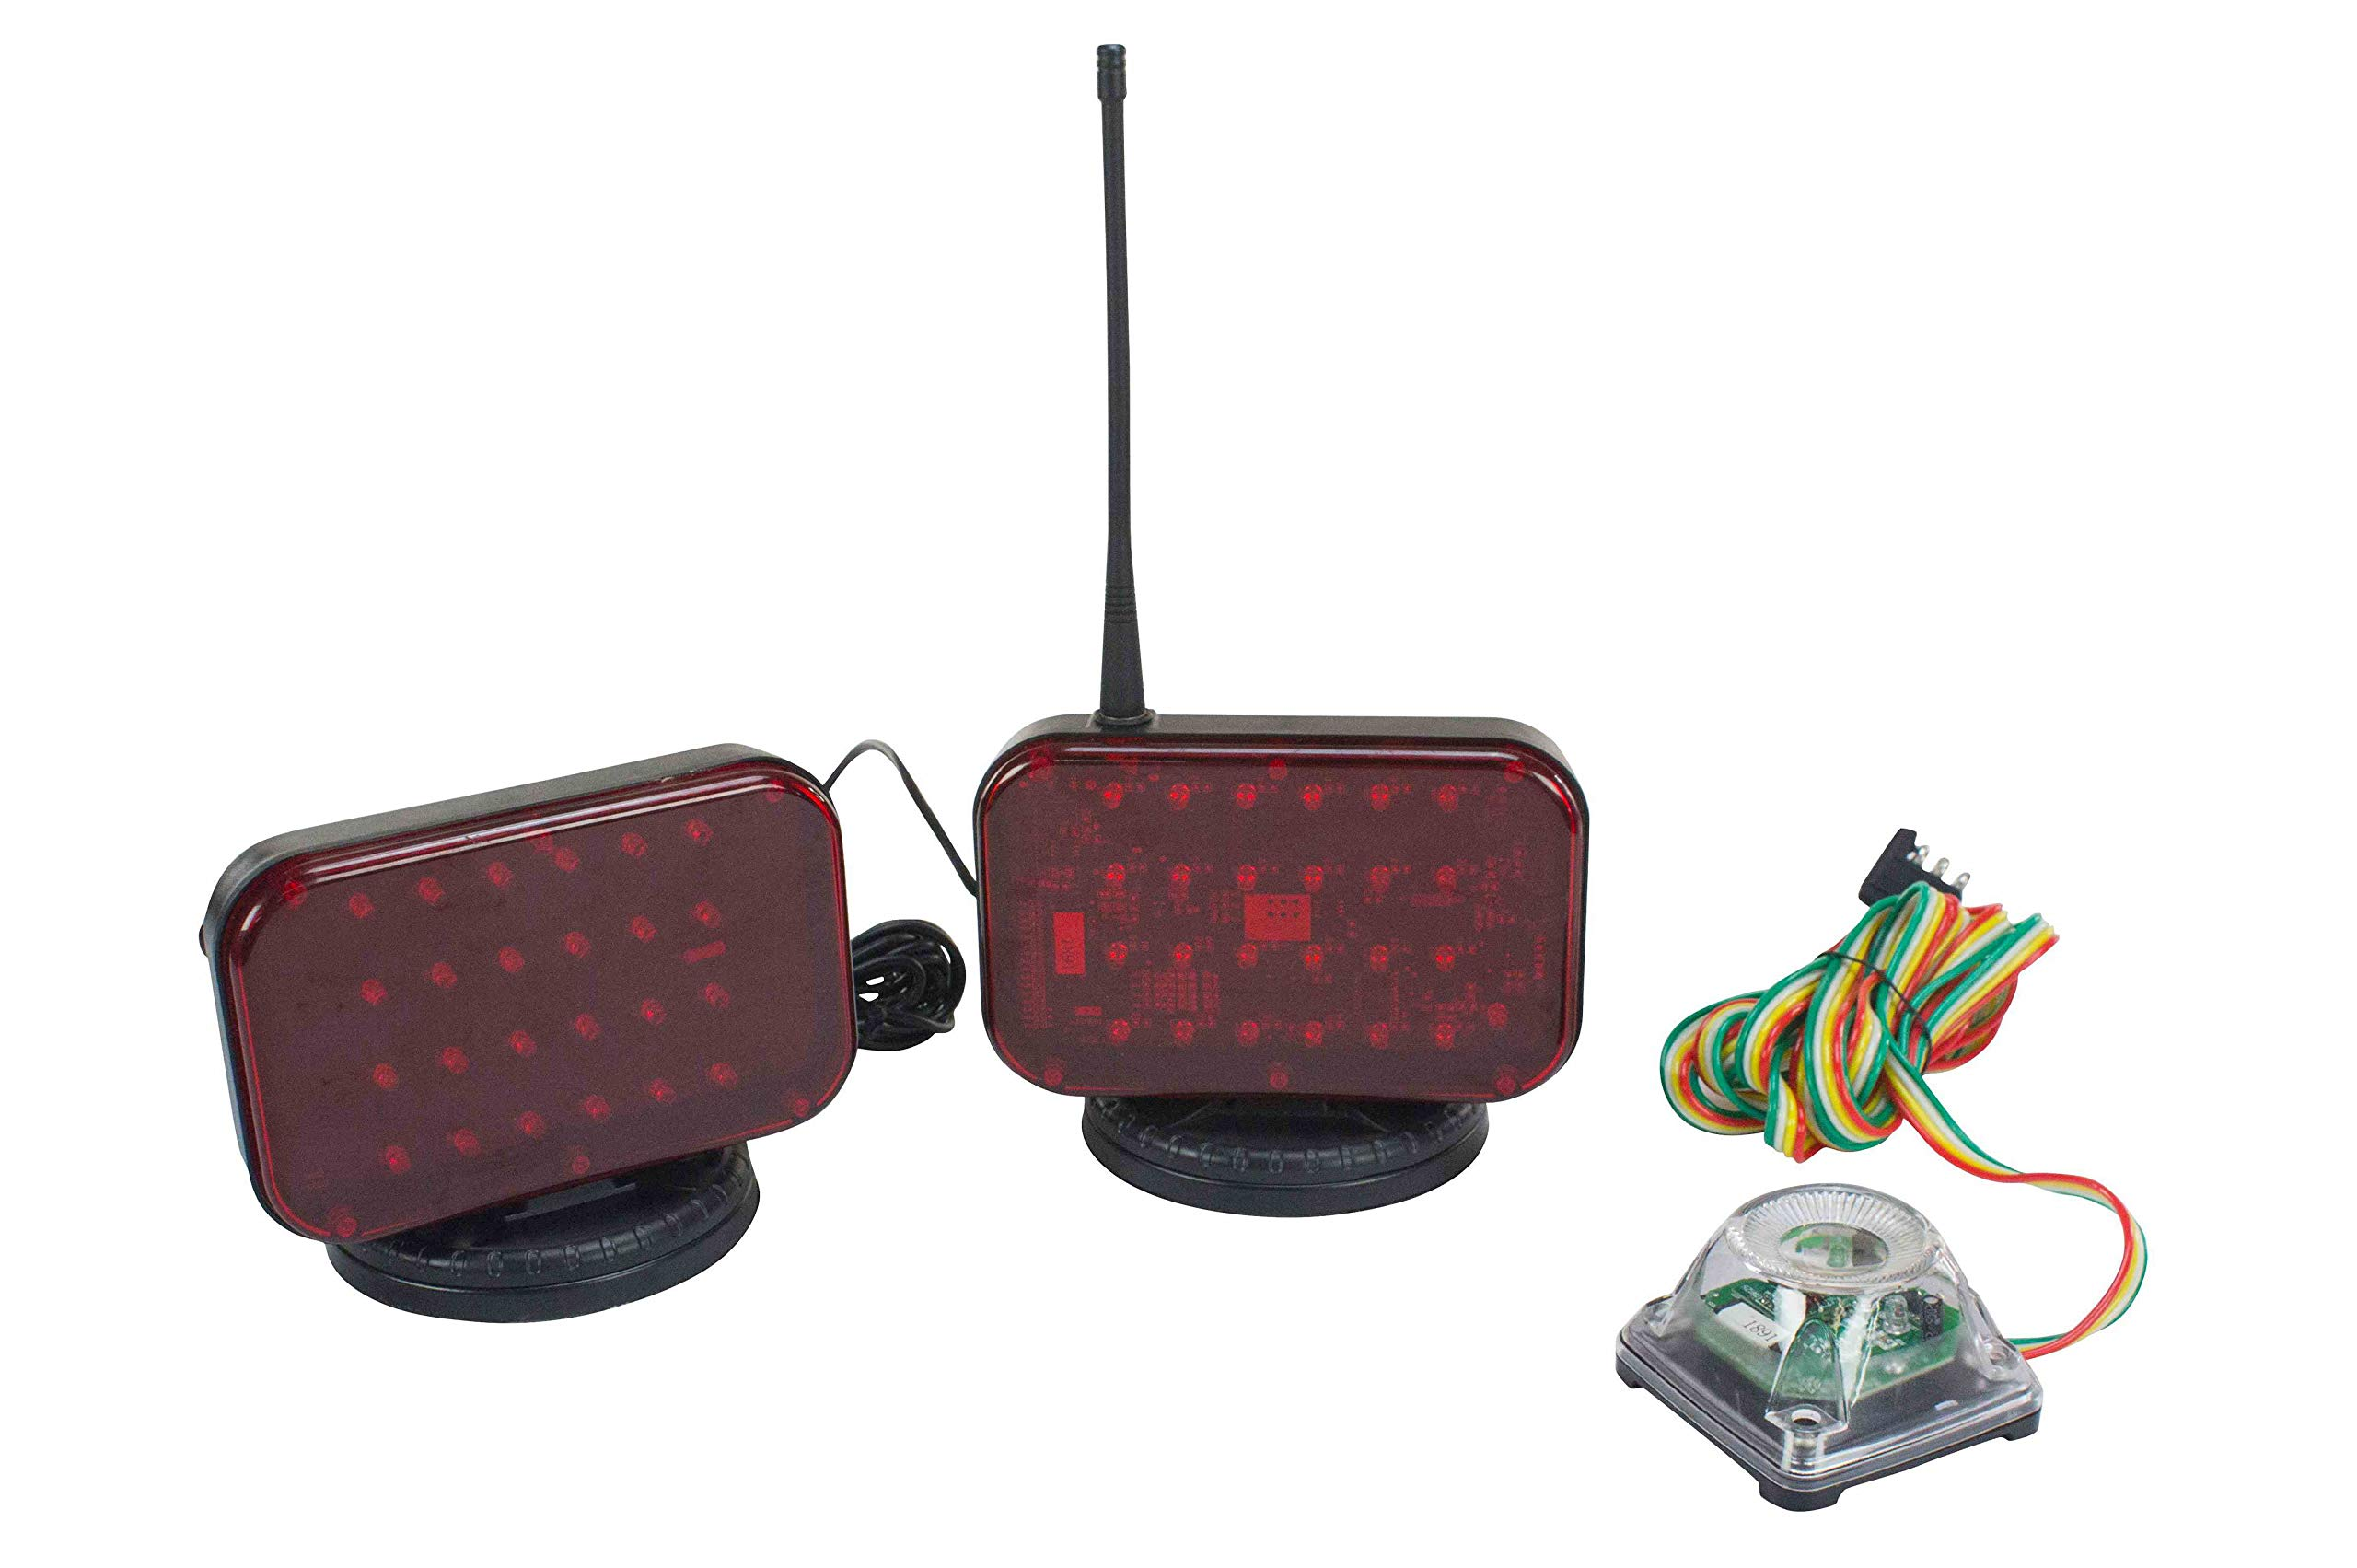 Wireless LED Tow Lights - Battery Operated - 30 Foot Wireless Operation Range - Magnet Mount by Larson Electronics